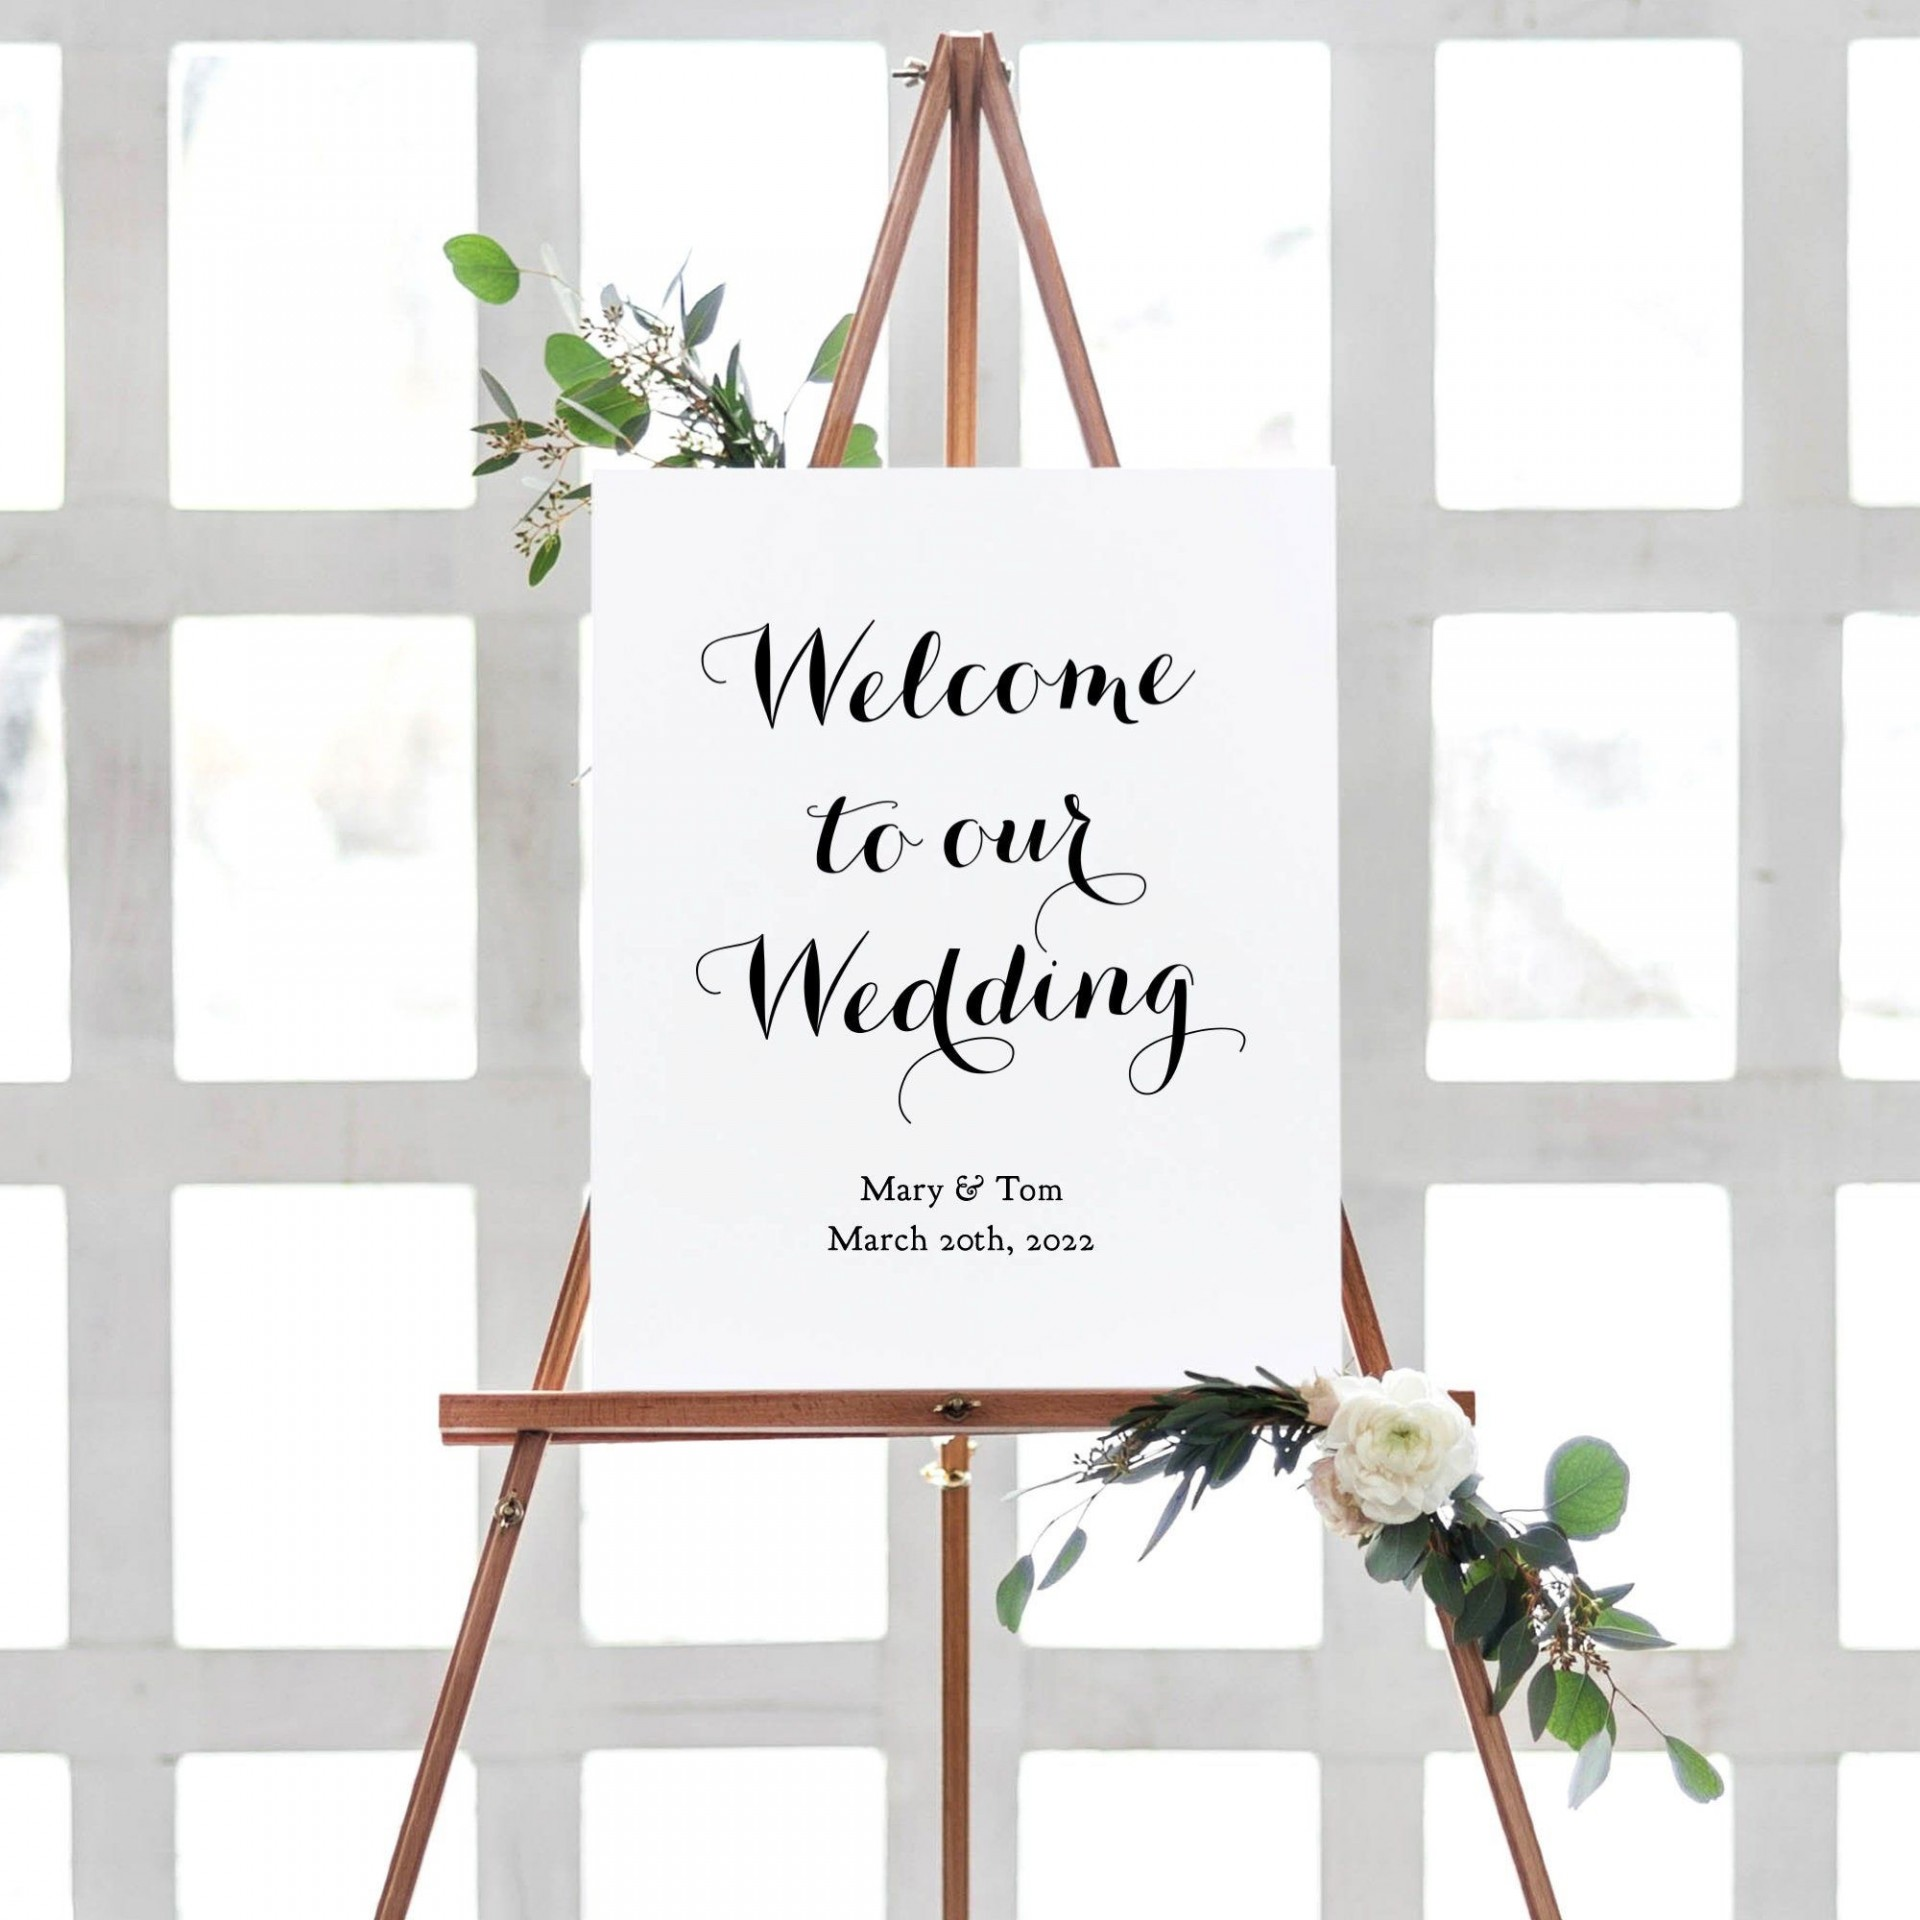 011 Beautiful Wedding Welcome Sign Printable Template Highest Quality  Free1920